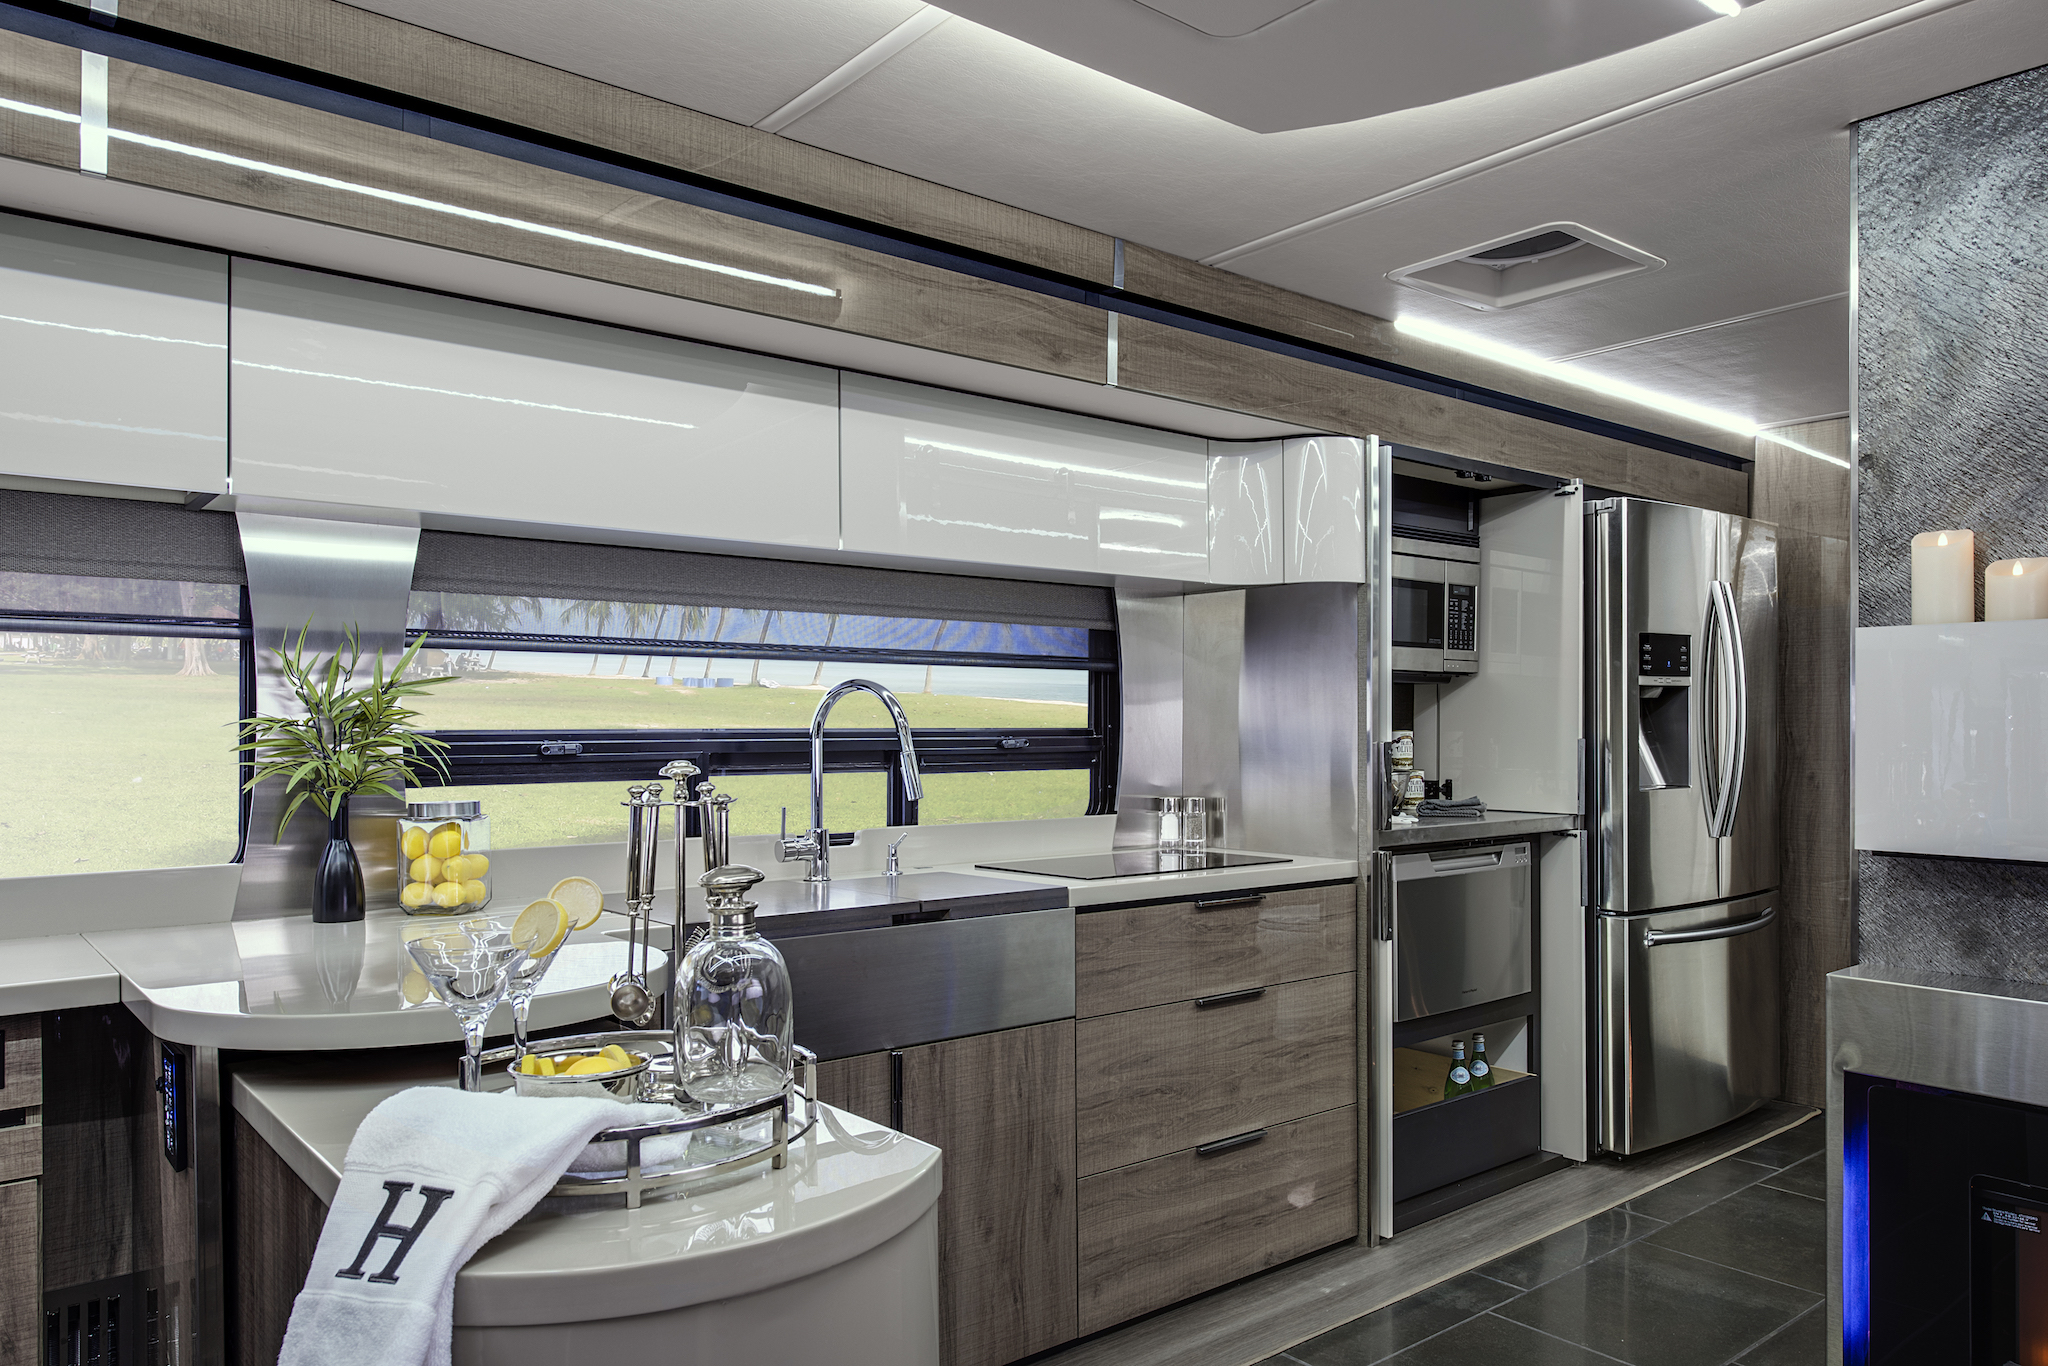 Bright and modern kitchen area of the Winnebago Horizon.